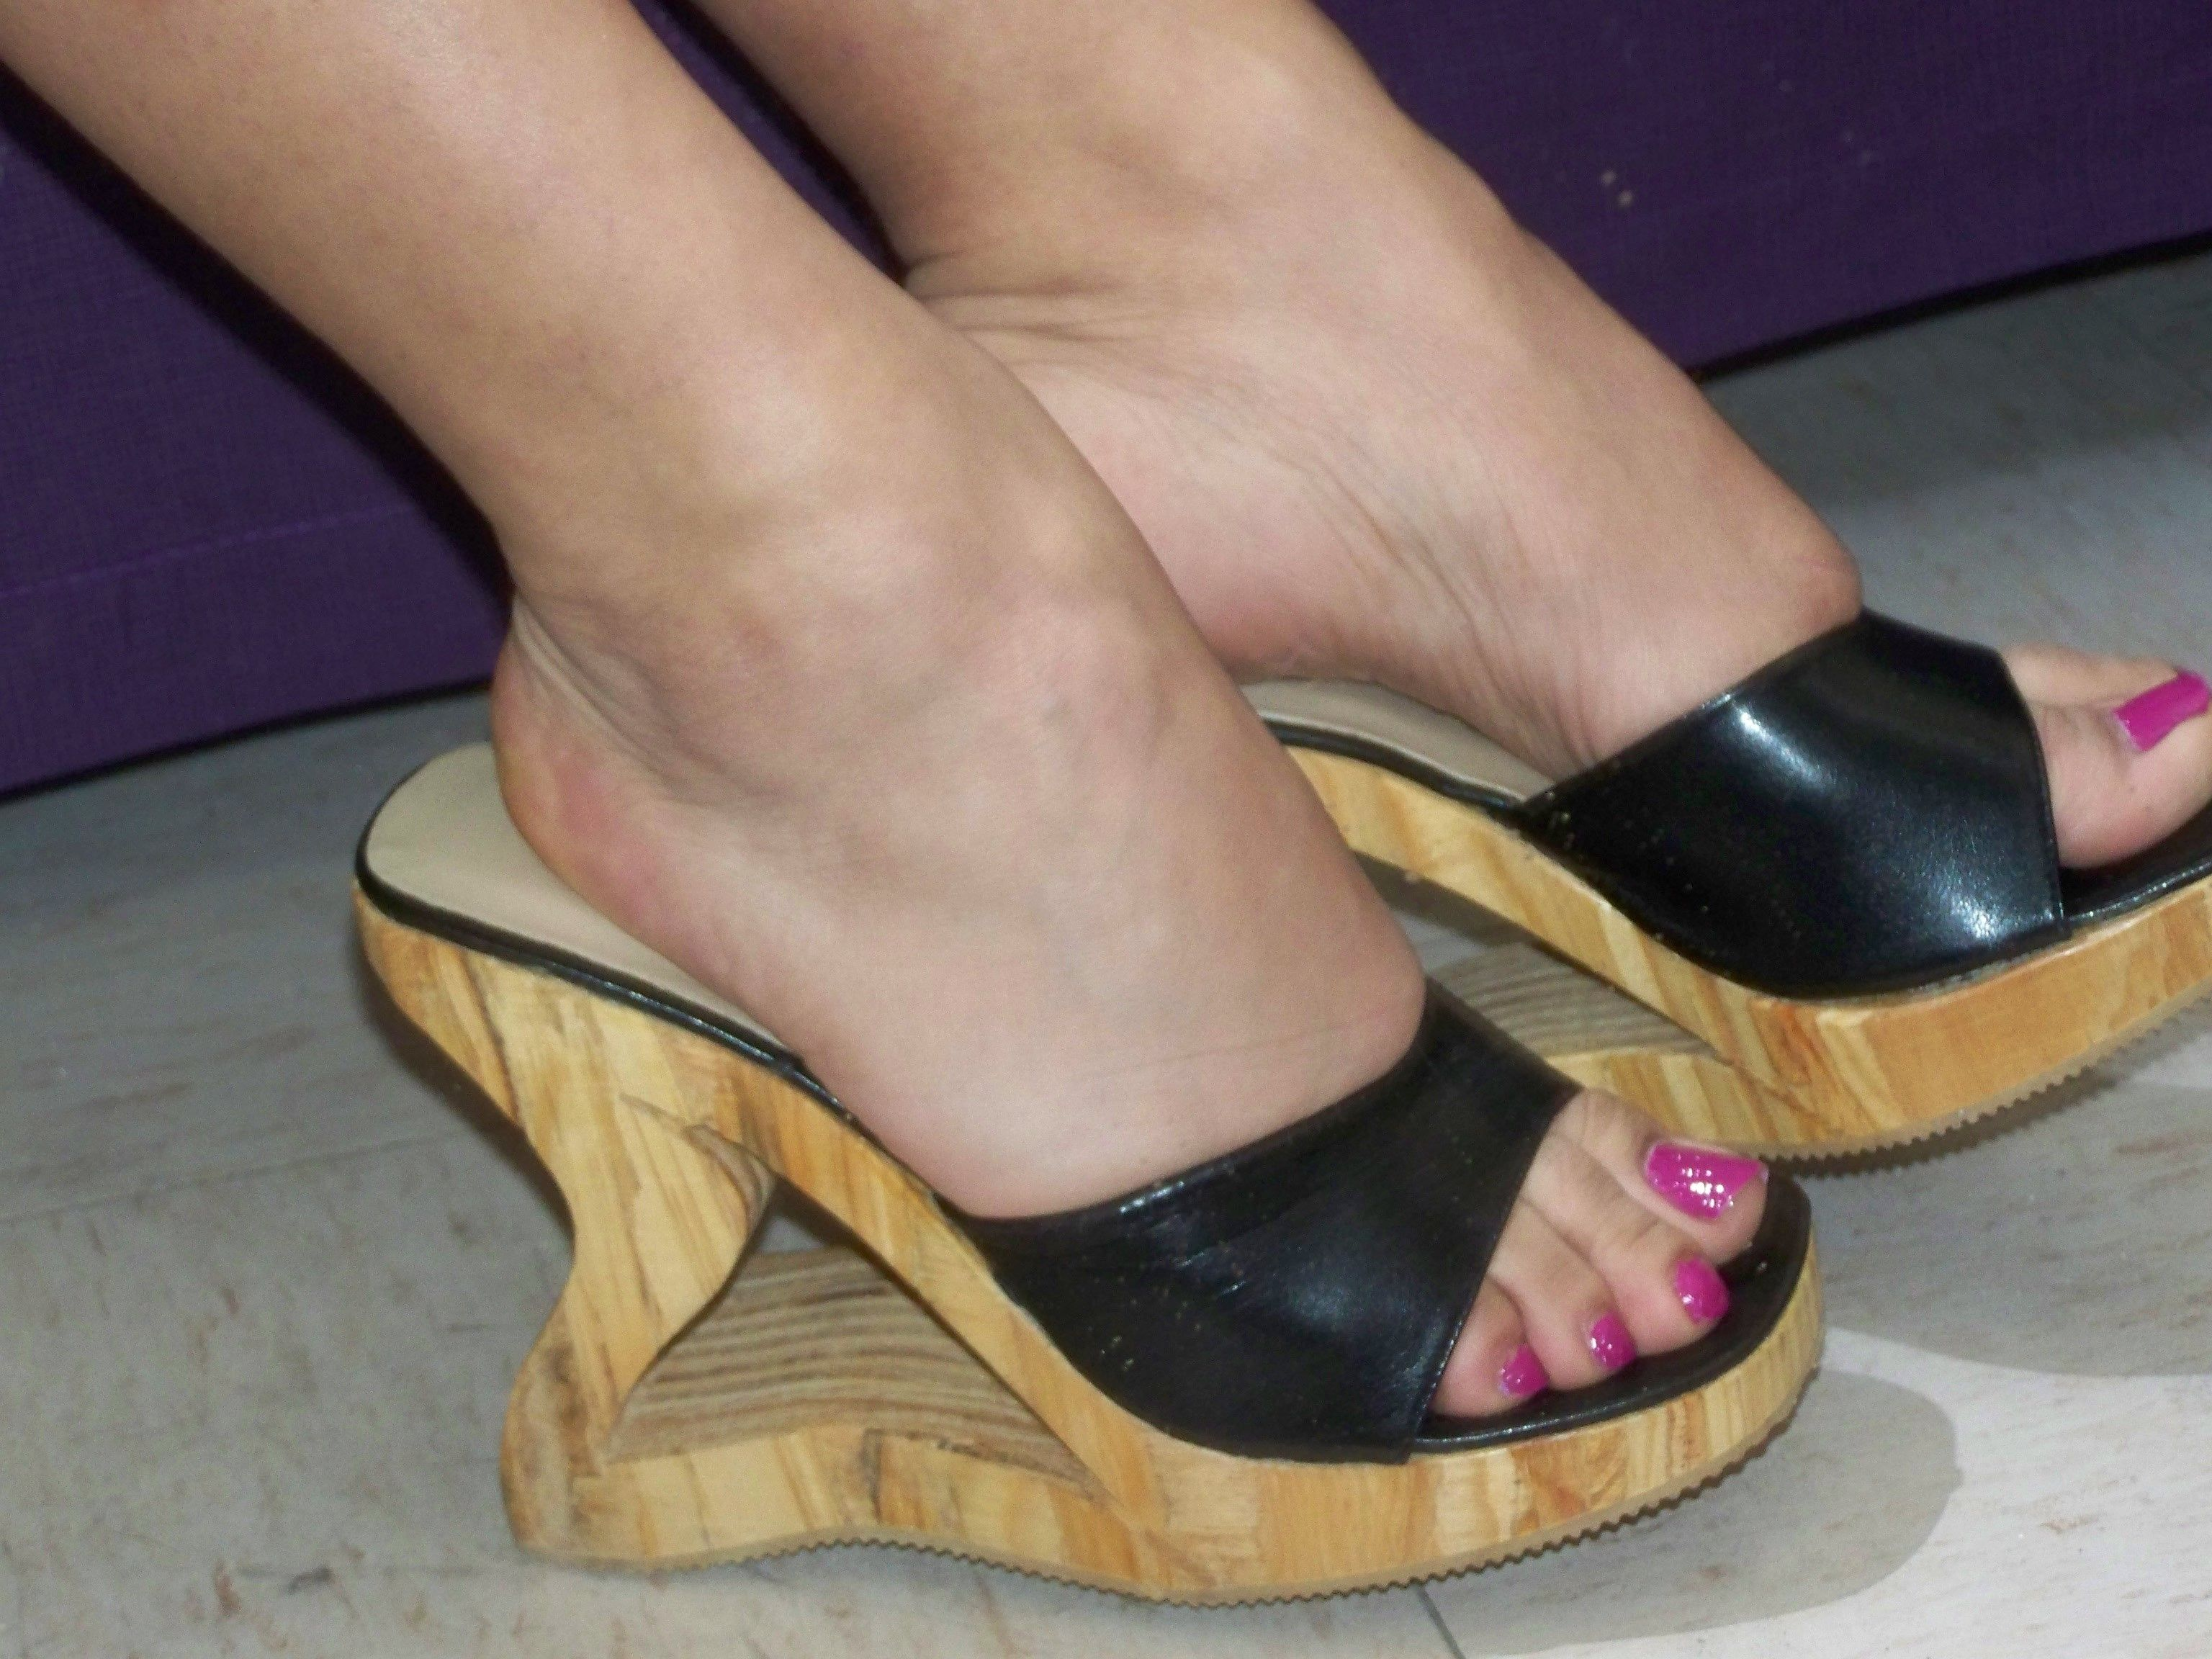 wedge shoes sexy jpg 1080x810